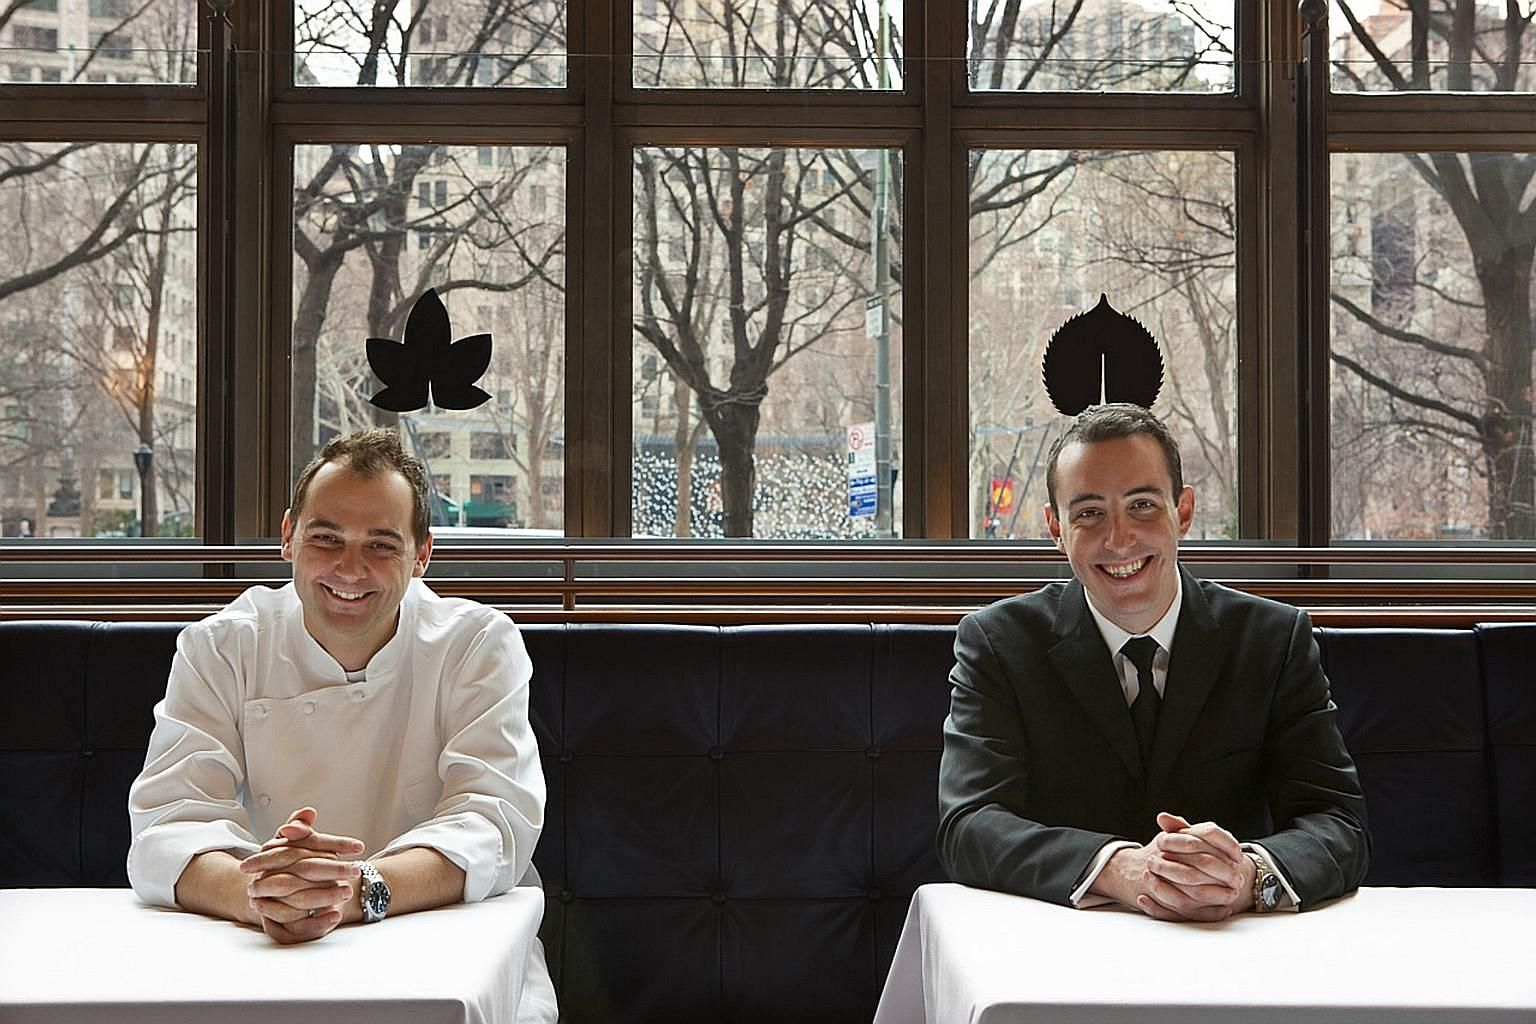 Chef Daniel Humm (far left) and business partner Will Guidara, who run Eleven Madison Park, the New York eatery that was namedWorld's Best Restaurant in 2017, will open Davies And Brook at the Claridge'shotel in London.